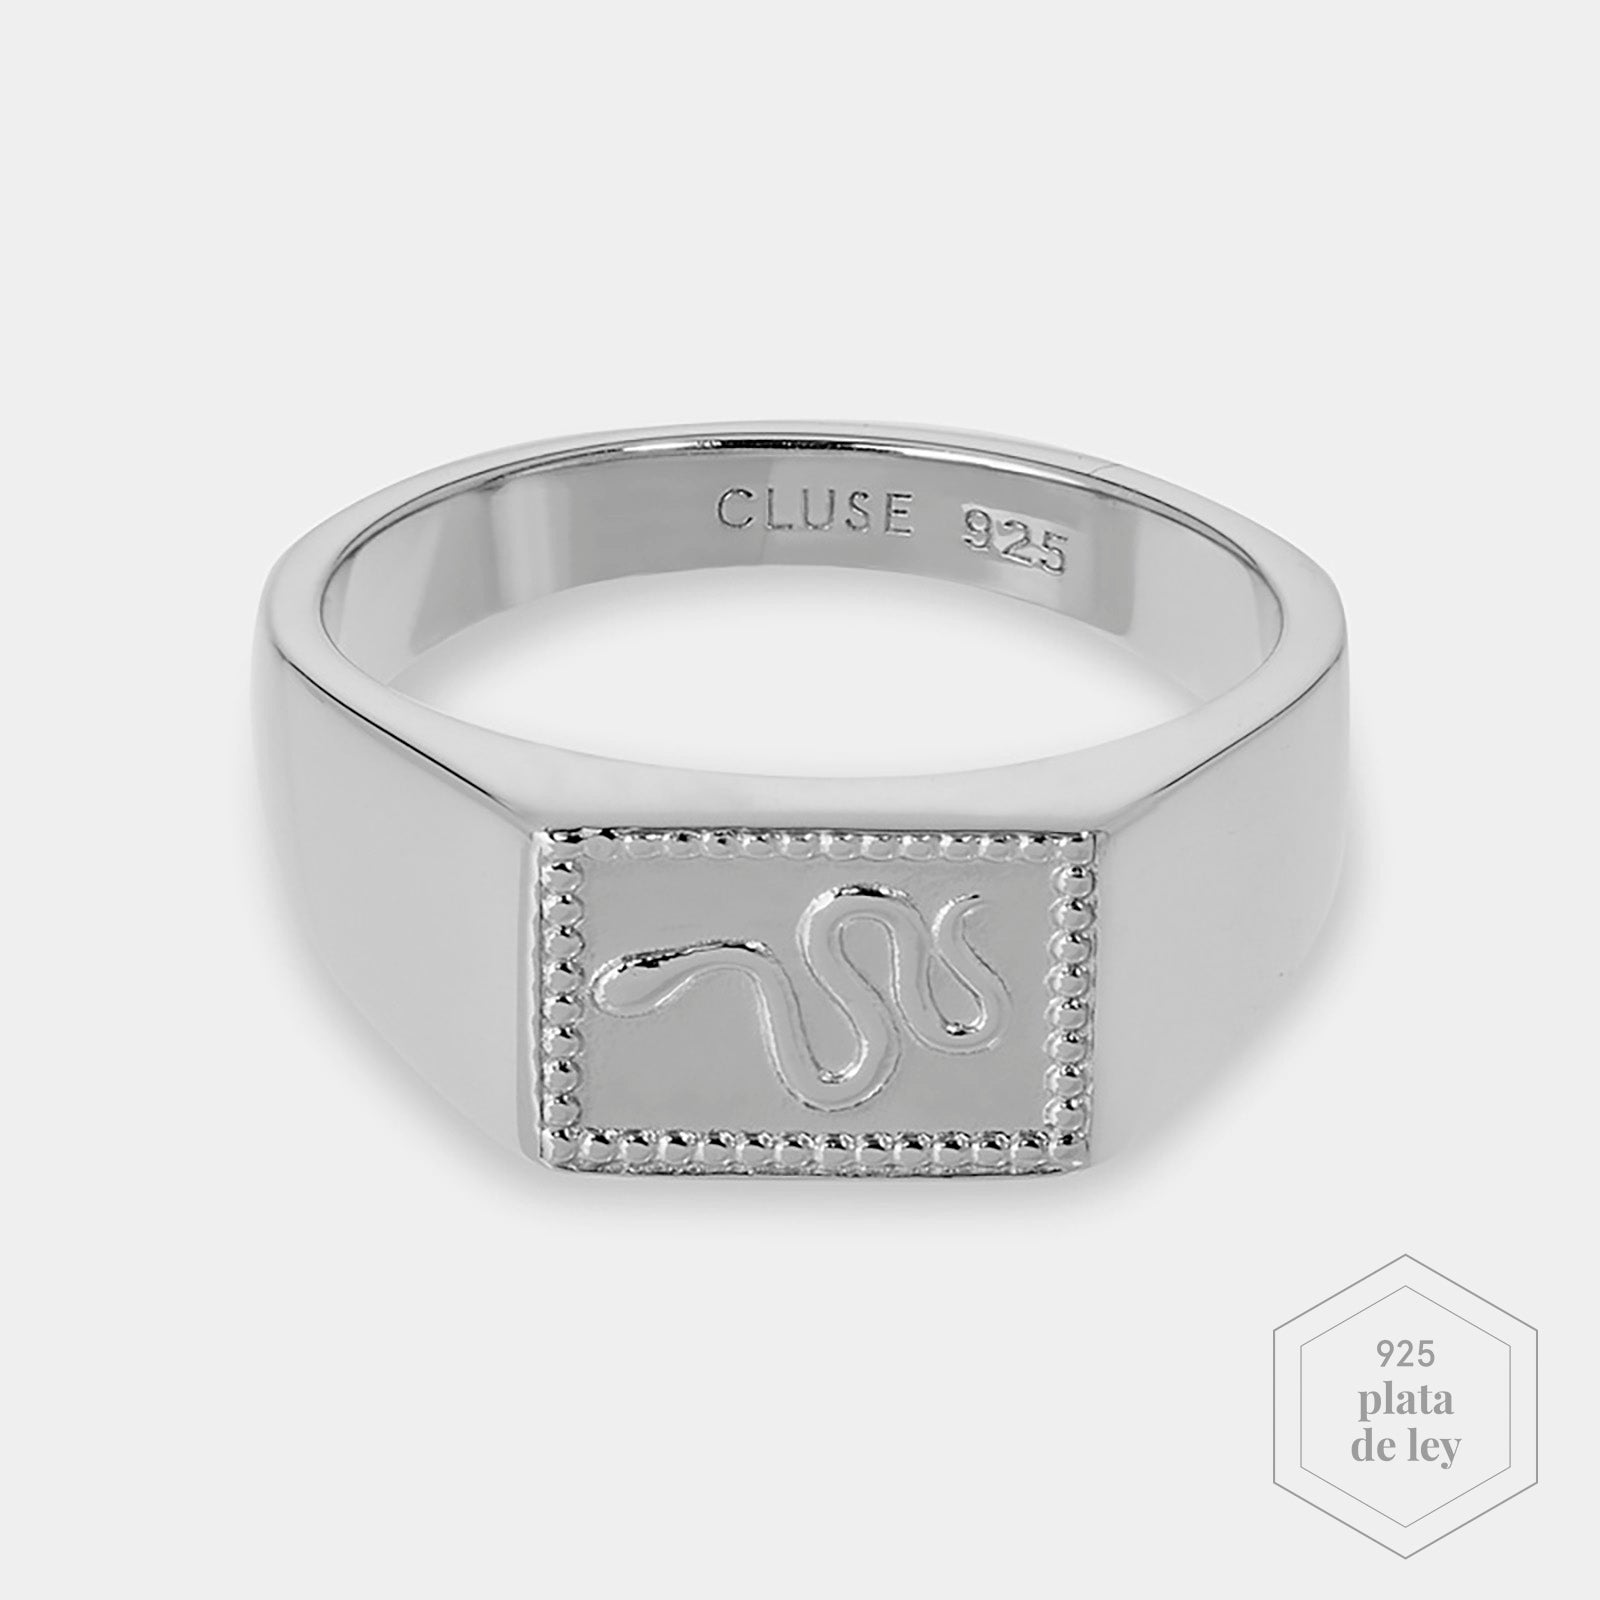 CLUSE Force Tropicale Silver Signet Rectangular Ring 56 CLJ42012-56 - Anillo talla 56